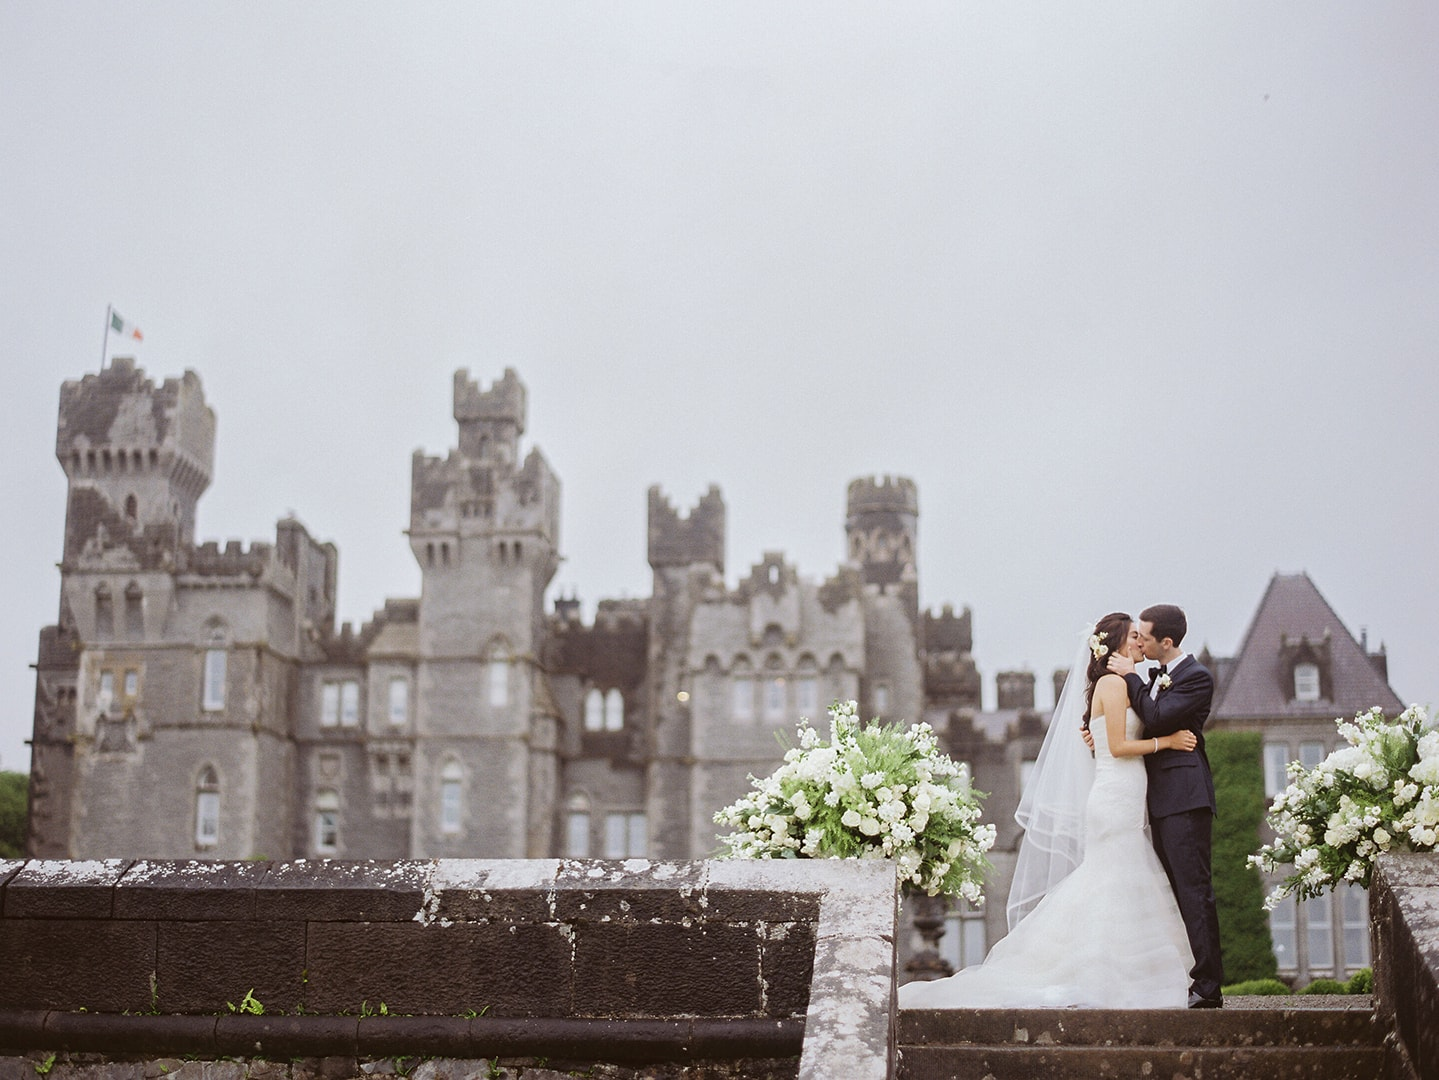 destination-weddings-ireland_ashford-castle-wedding-min.jpg